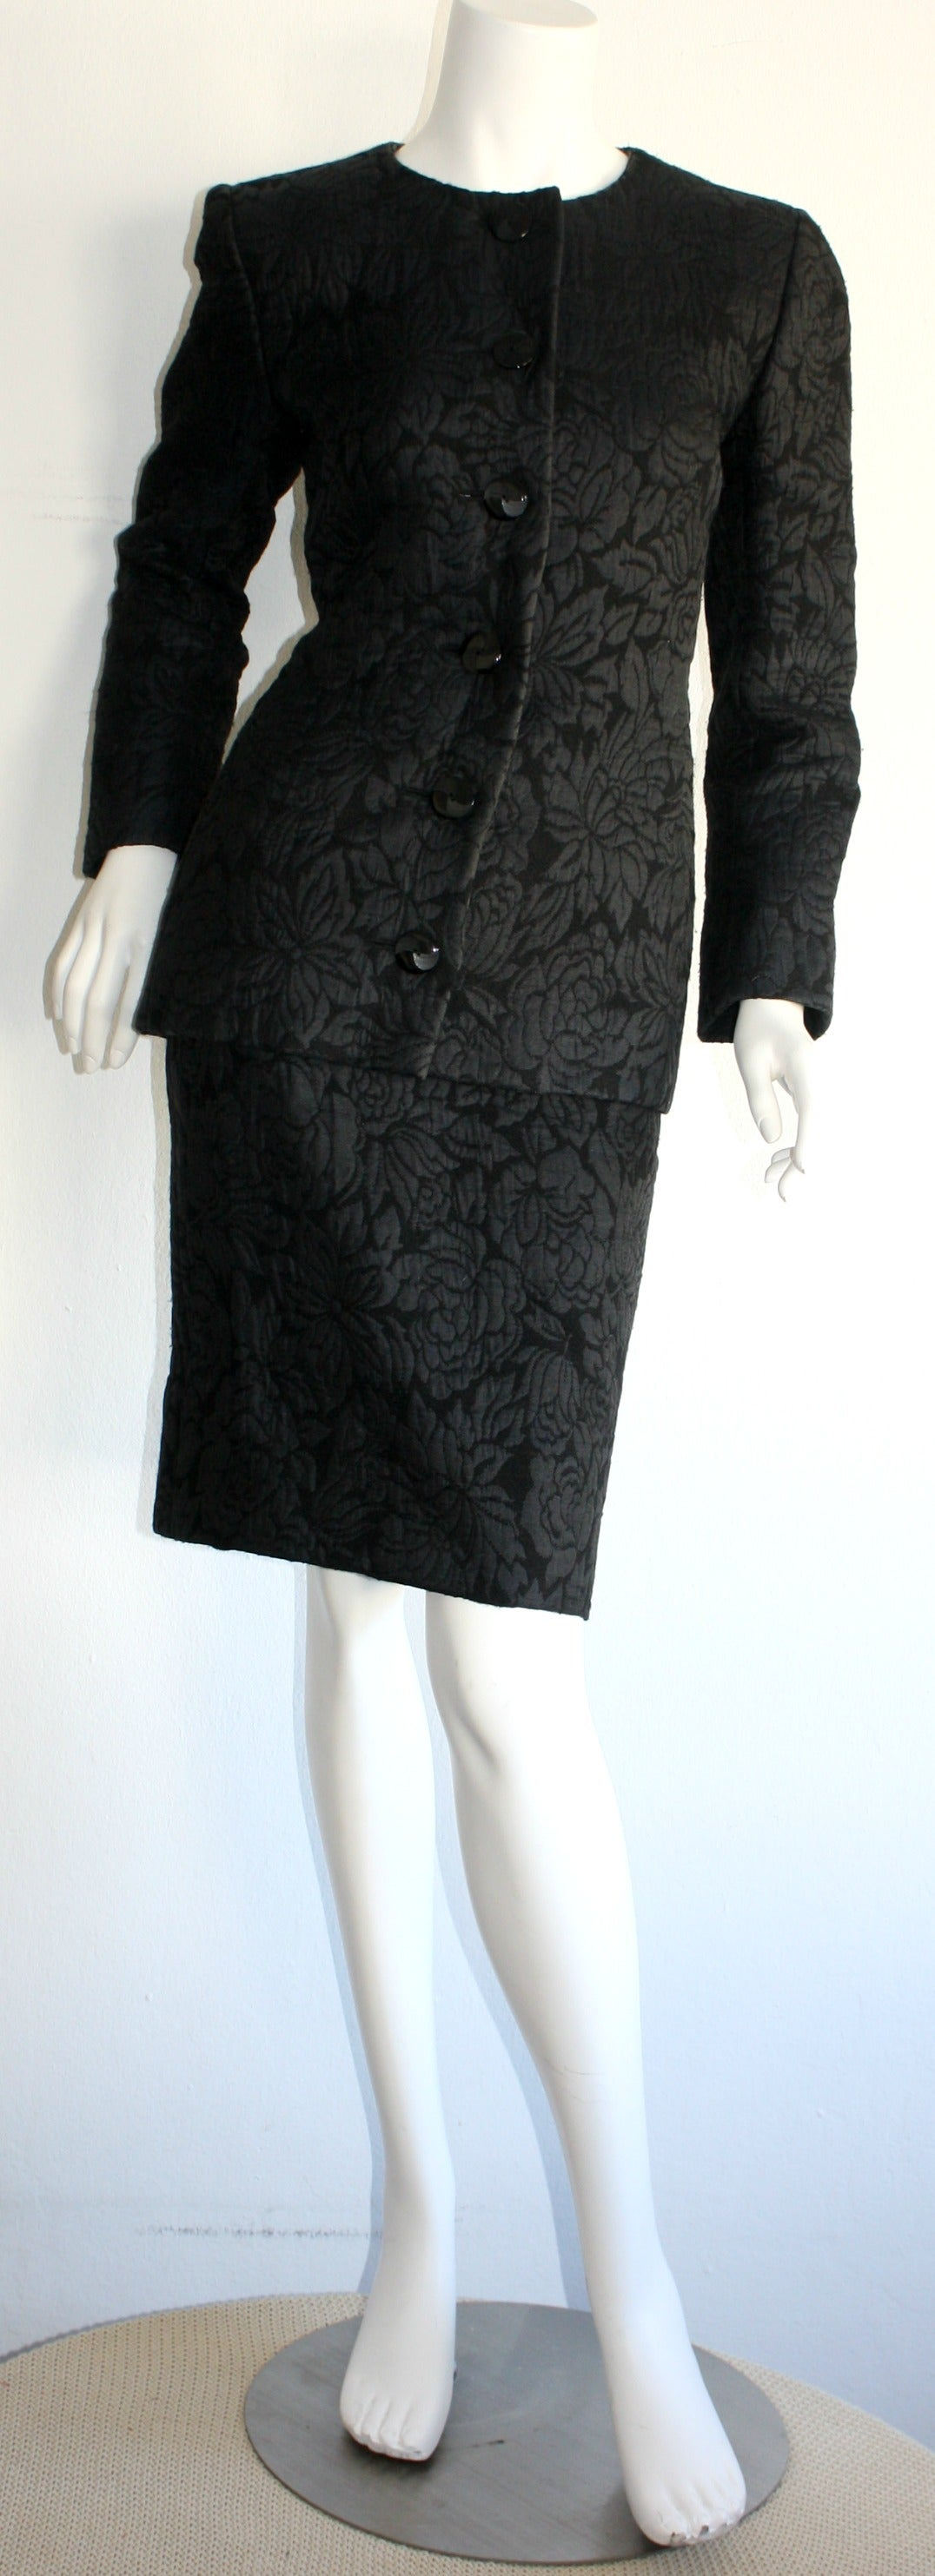 vintage yves saint laurent haute couture numbered skirt suit stunning for sale at 1stdibs. Black Bedroom Furniture Sets. Home Design Ideas